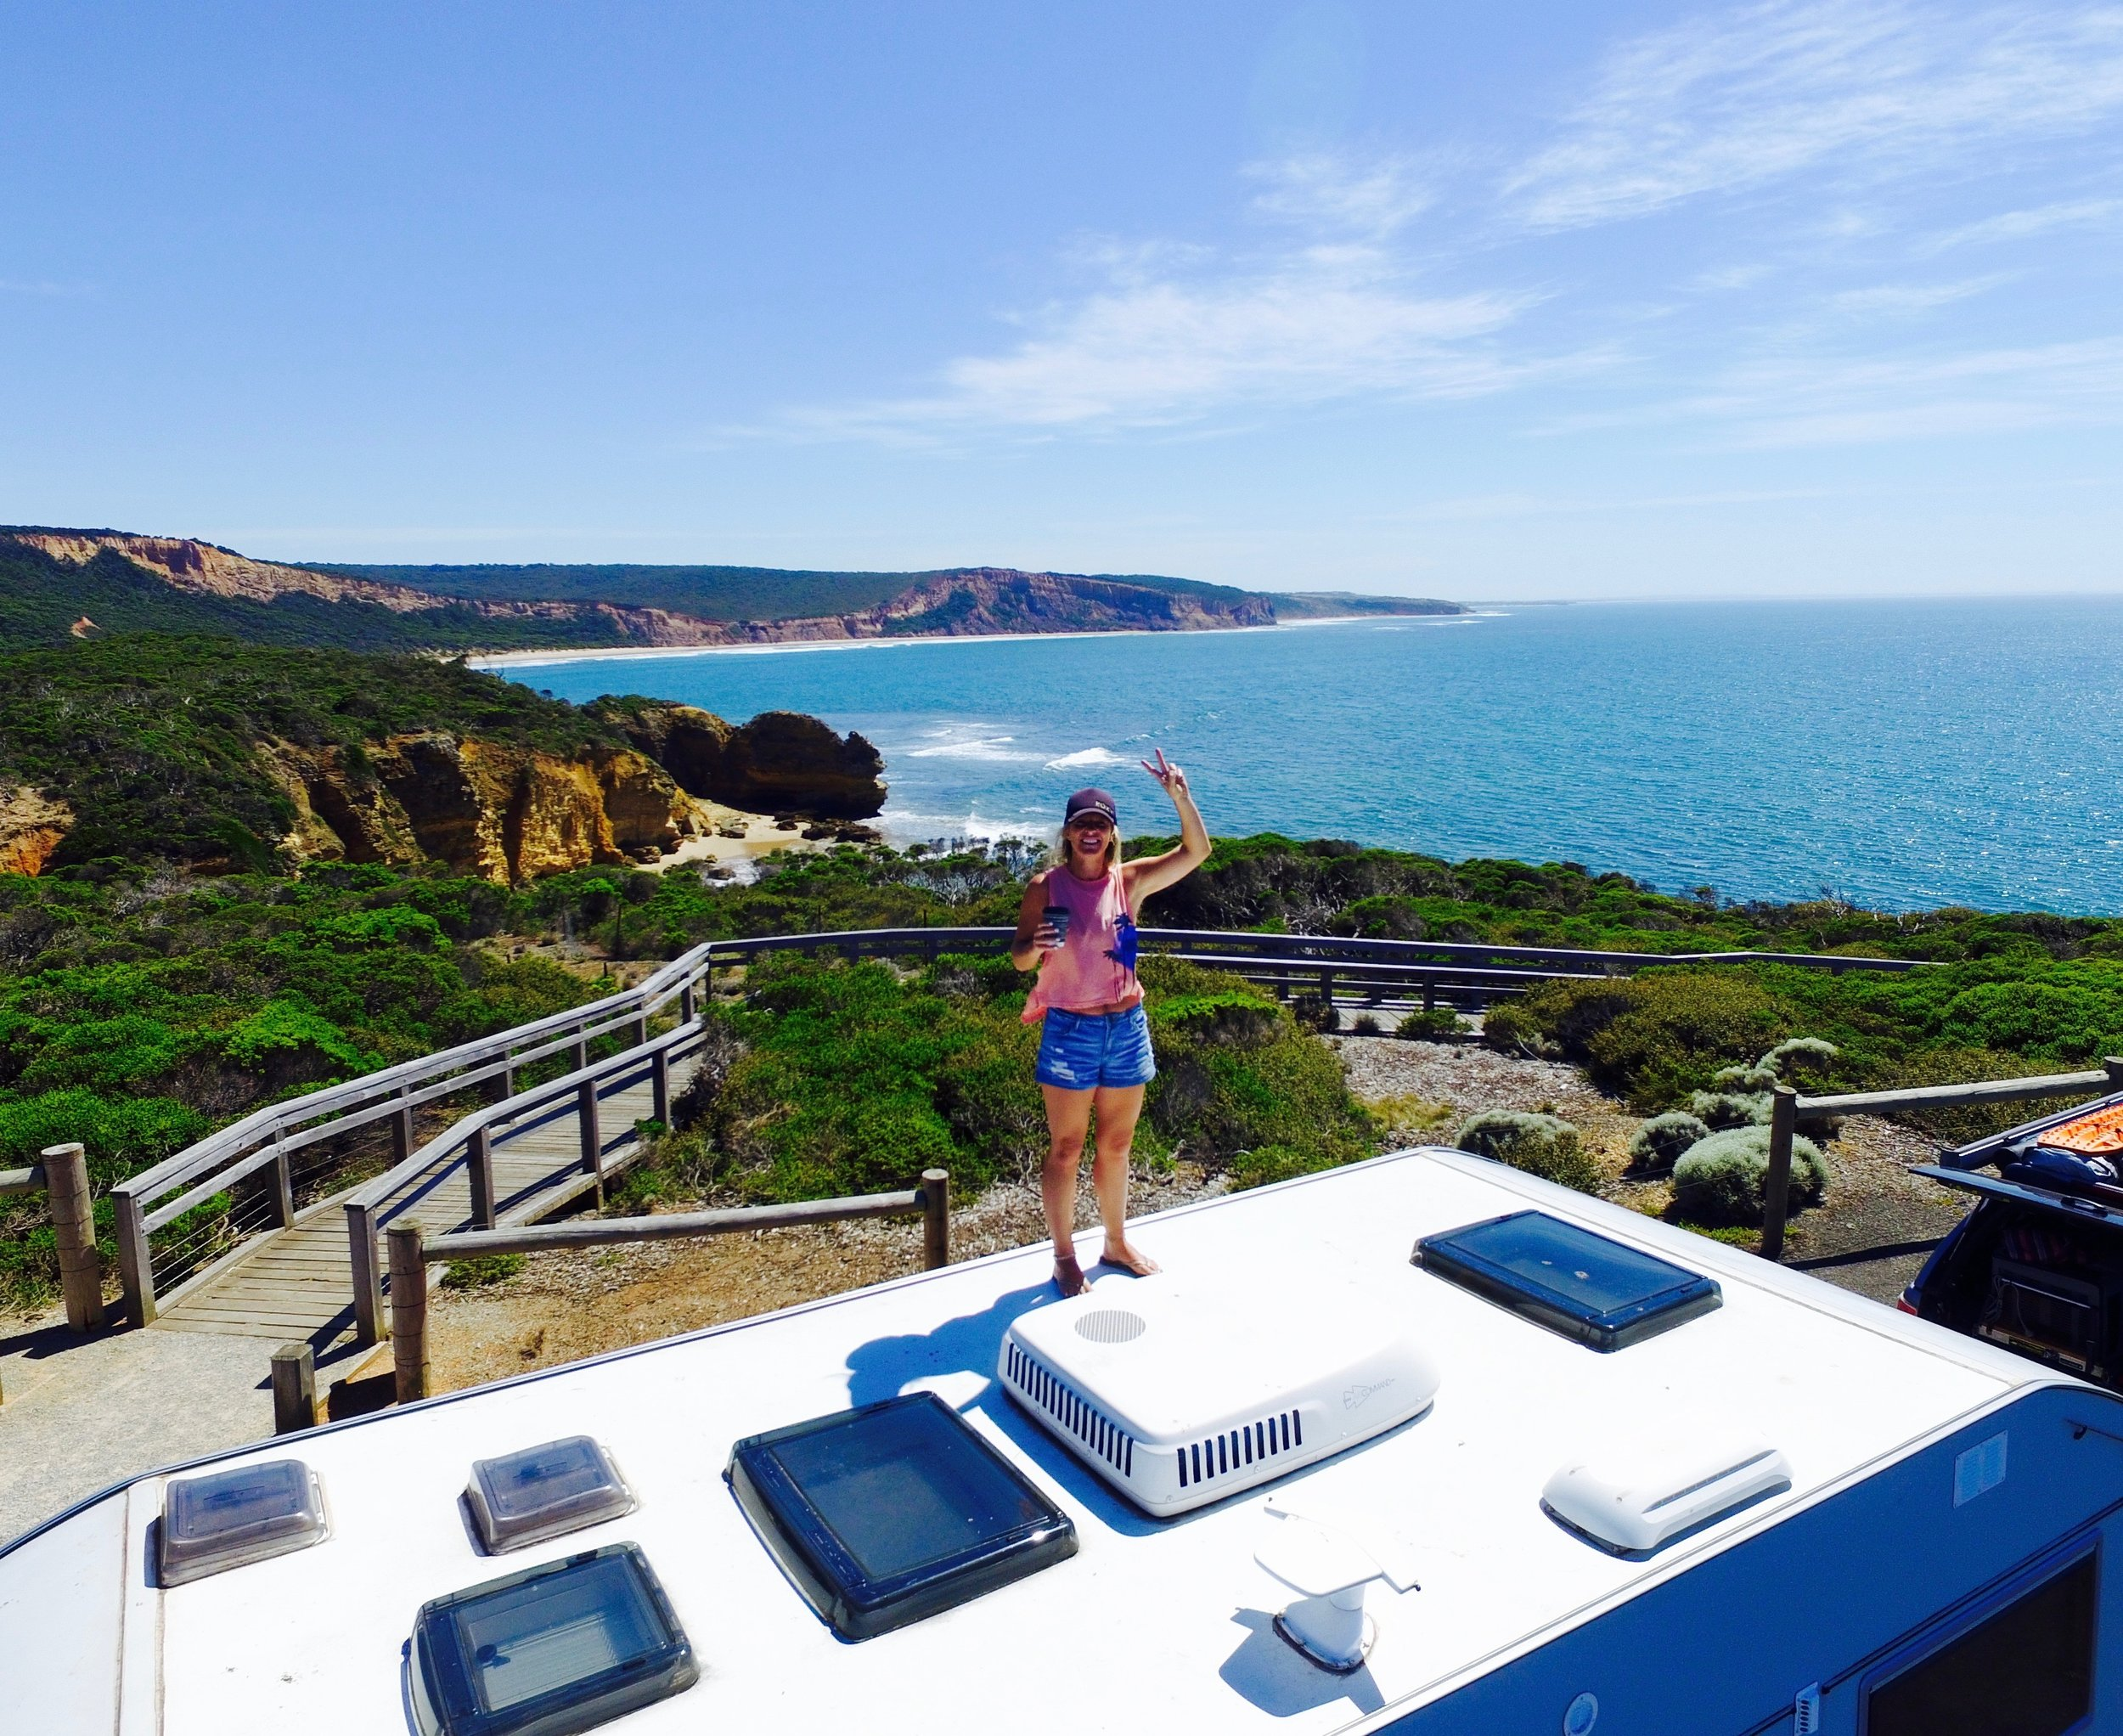 THE GREAT OCEAN ROAD - TORQUAY TO WARRNAMBOOL